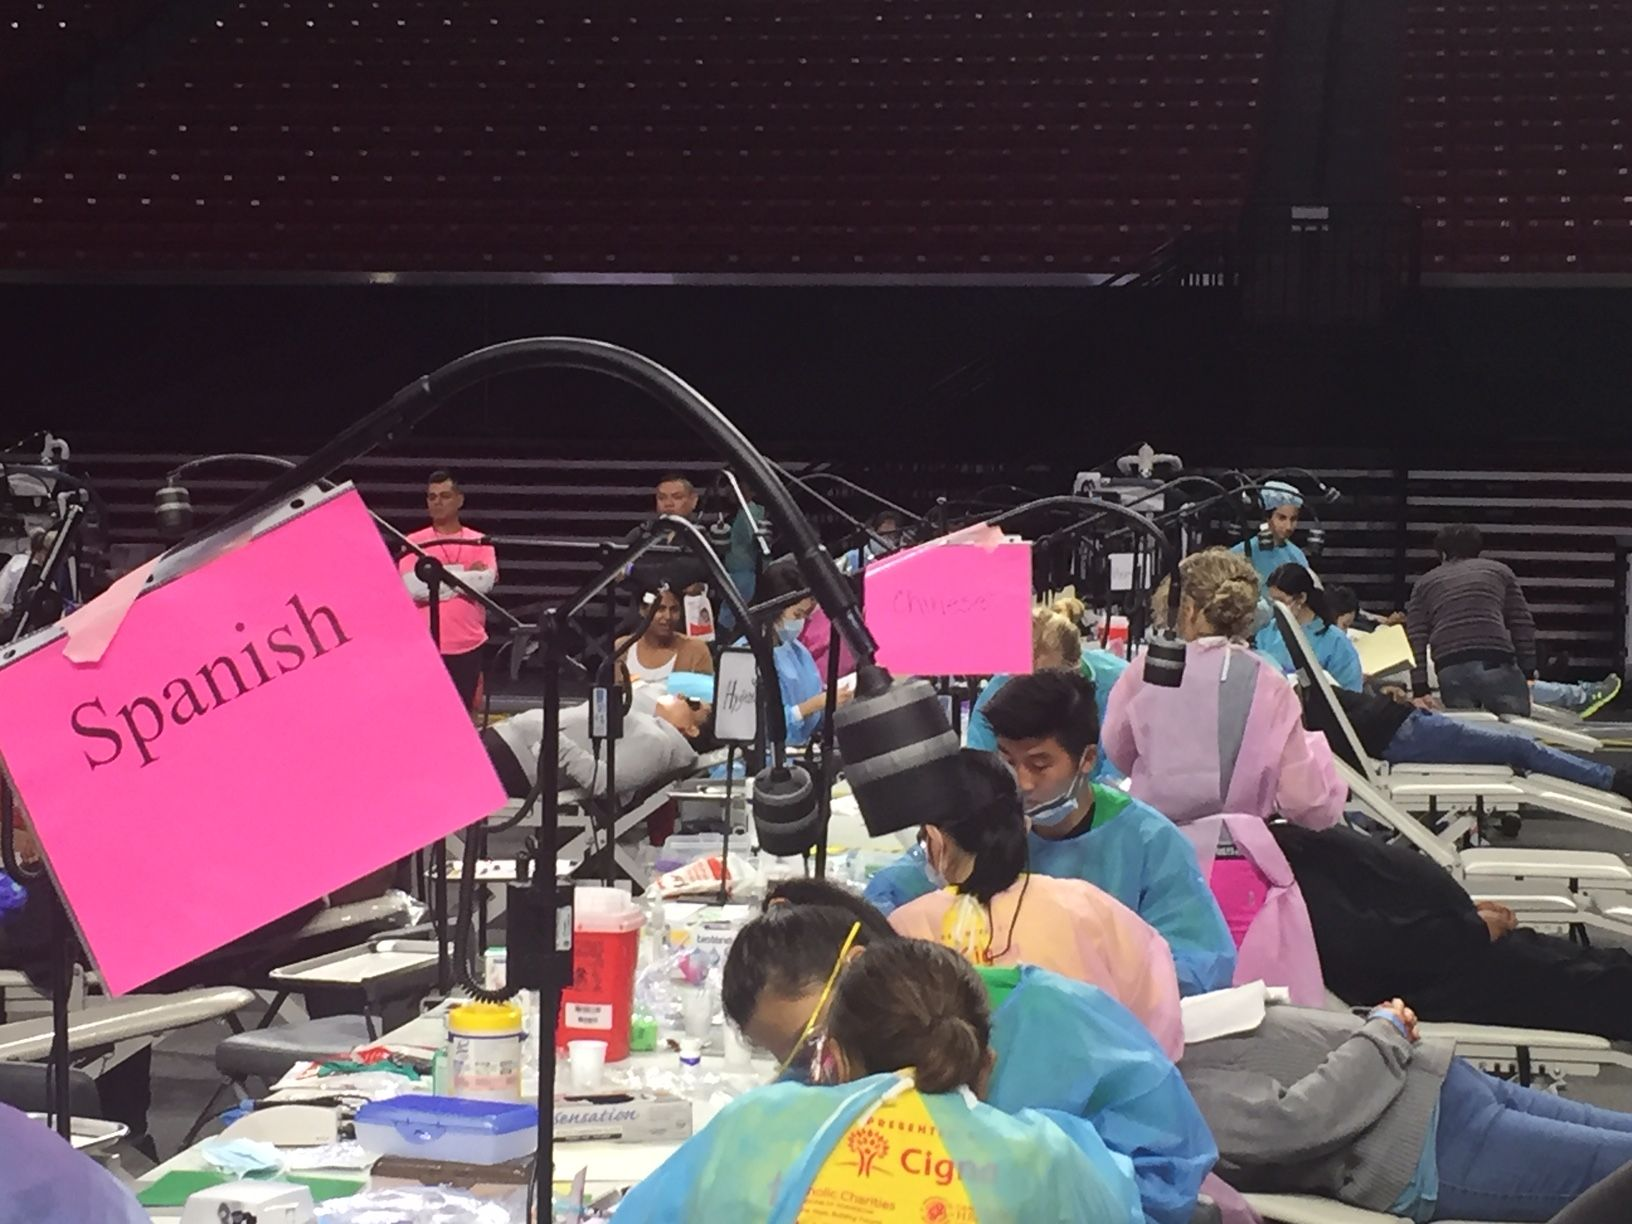 Booths set up to accommodate Spanish-speaking patients in the Xfinity Center.